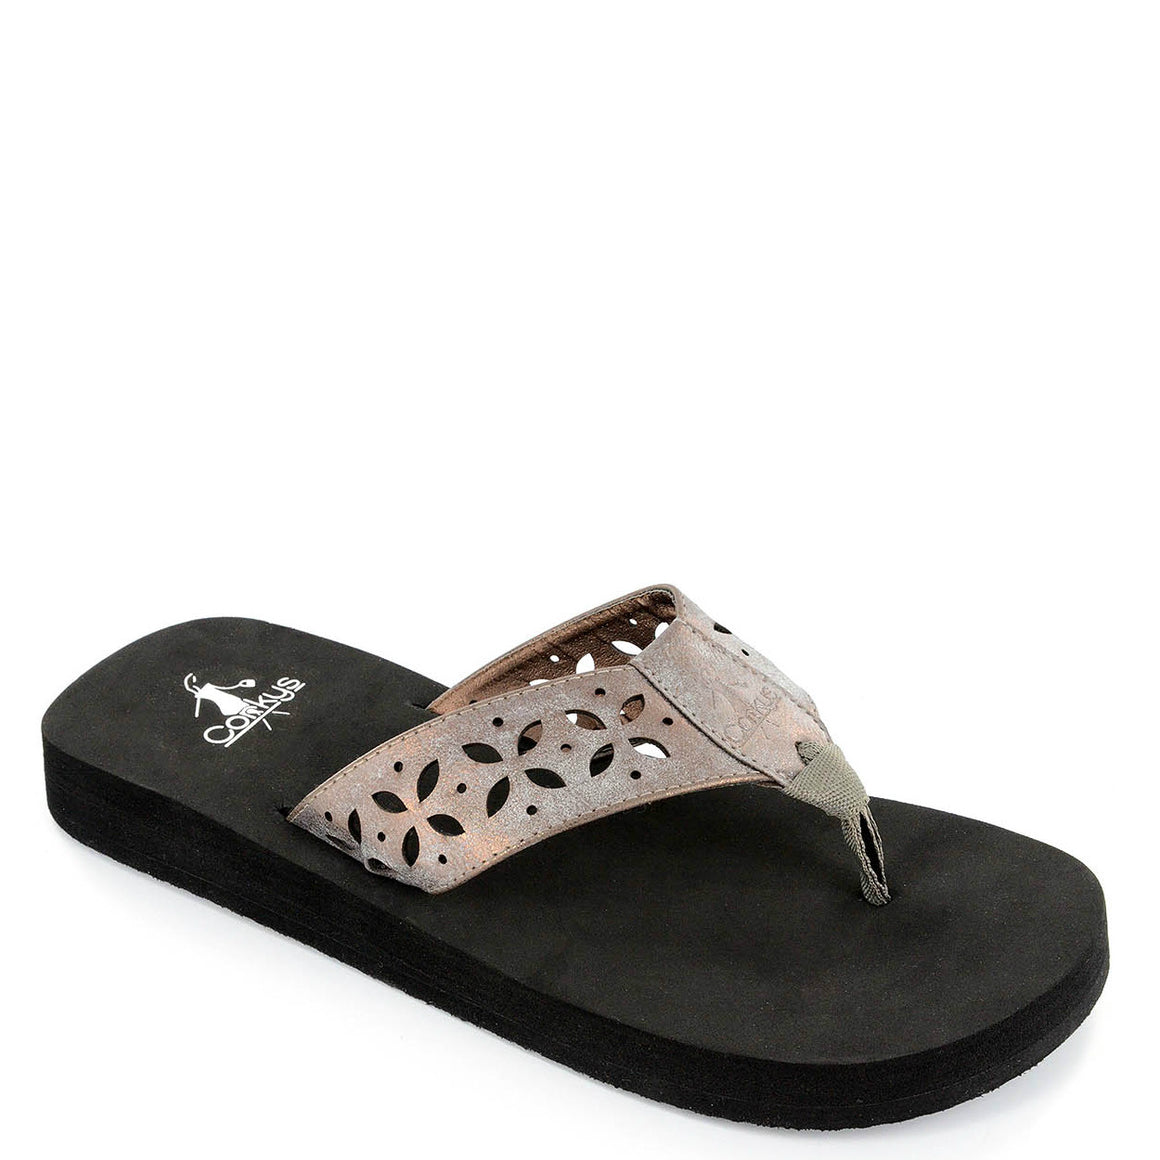 Corkys Women's Luna Sandal - Brushed Bronze 20-8105